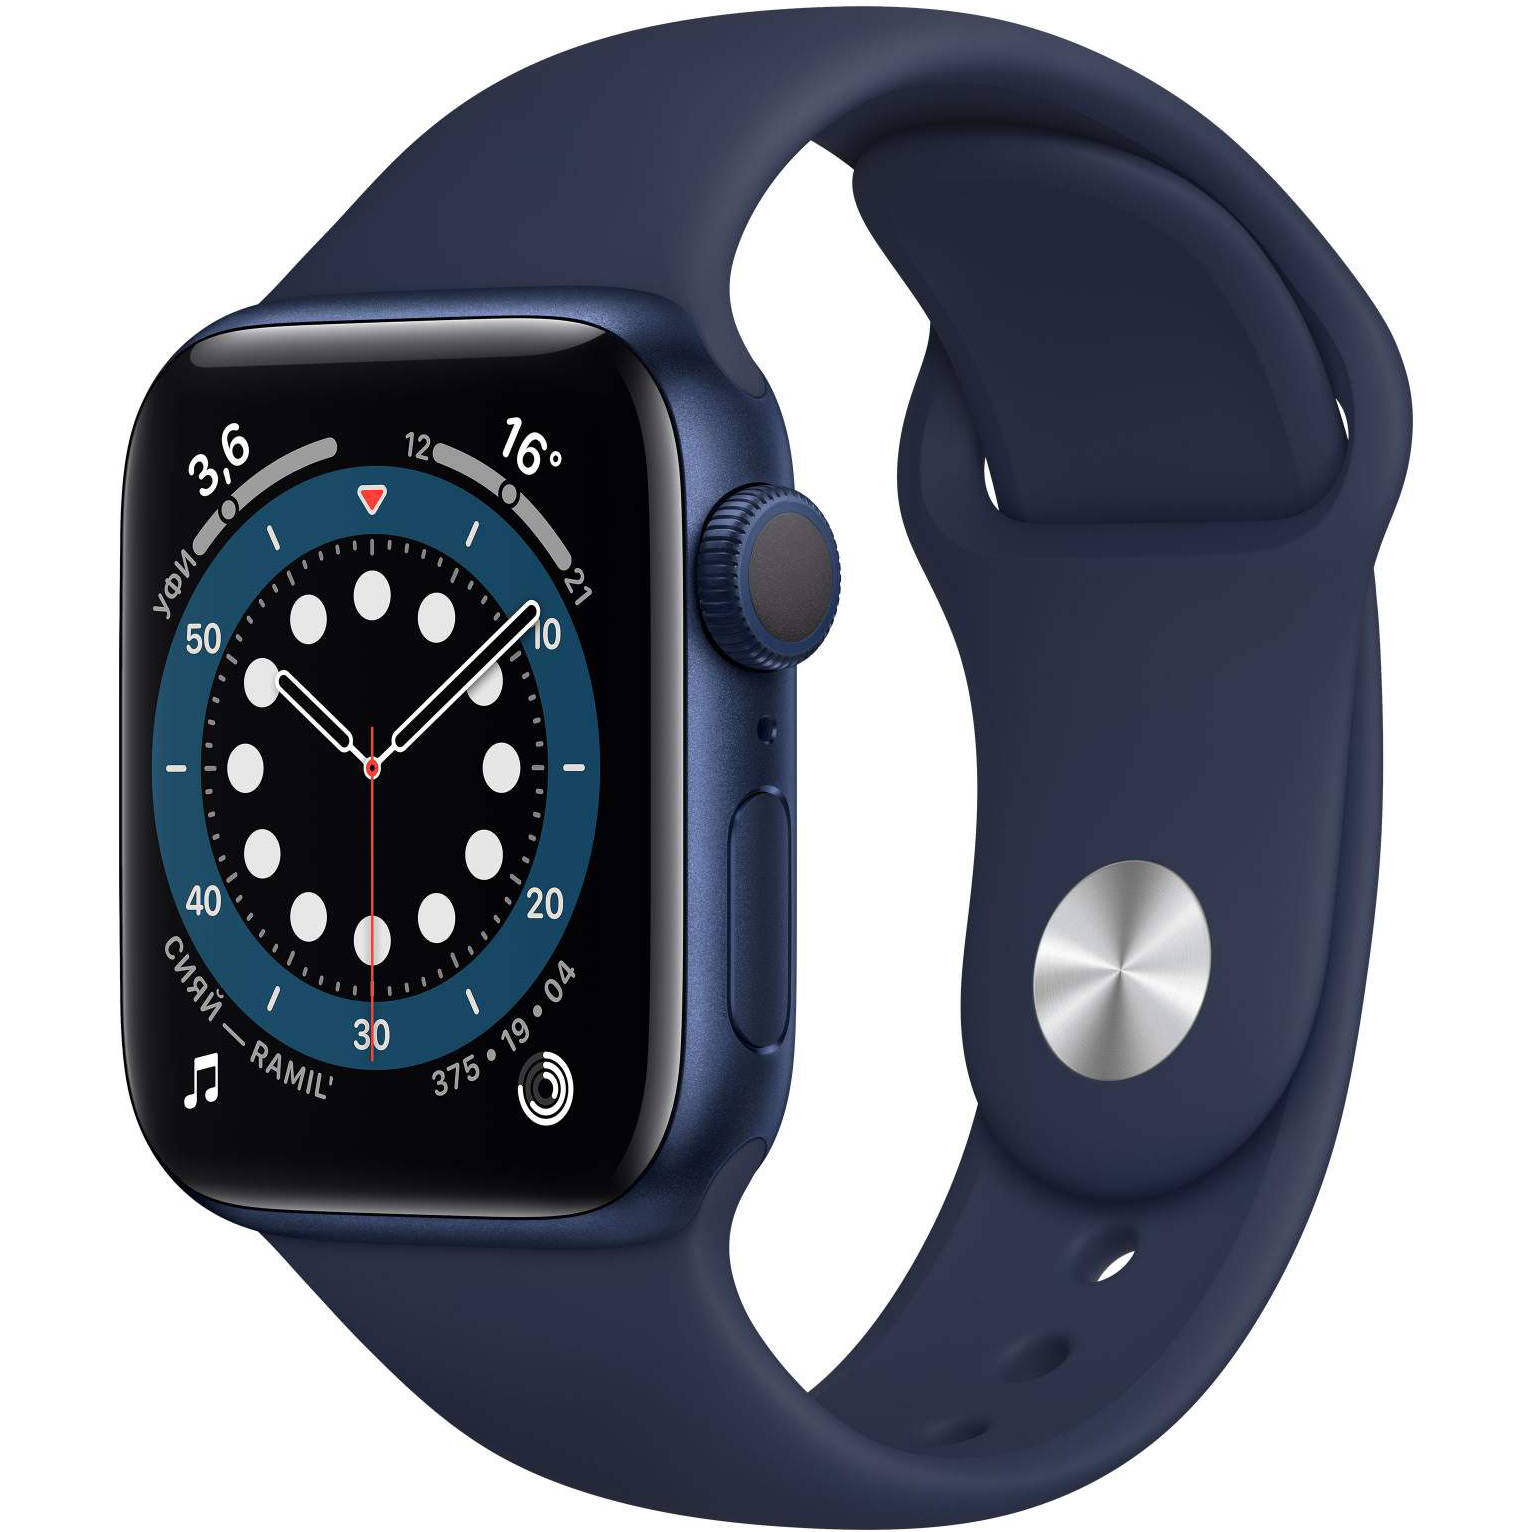 Смарт-часы Apple Watch 6 GPS 40мм Blue MG143RU/A смарт часы apple watch series 6 40 мм золотой mg123ru a